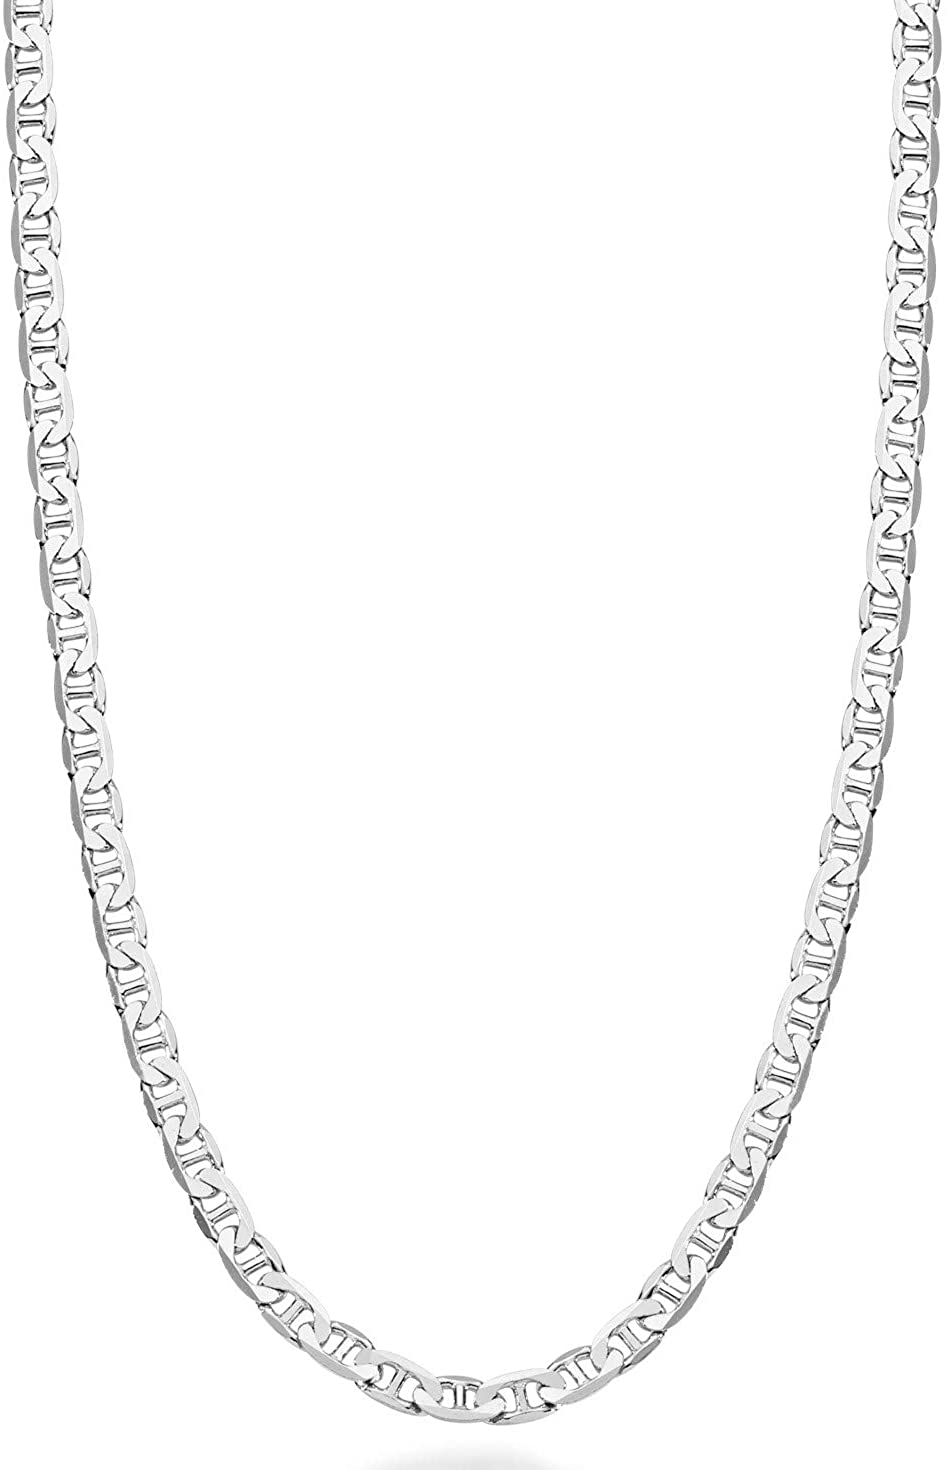 Miabella Solid 925 Sterling Silver Italian 3mm, 4mm, 6mm, 7mm Diamond-Cut Solid Flat Mariner Link Chain Necklace for Women Men, 16-30 Inch Made in Italy